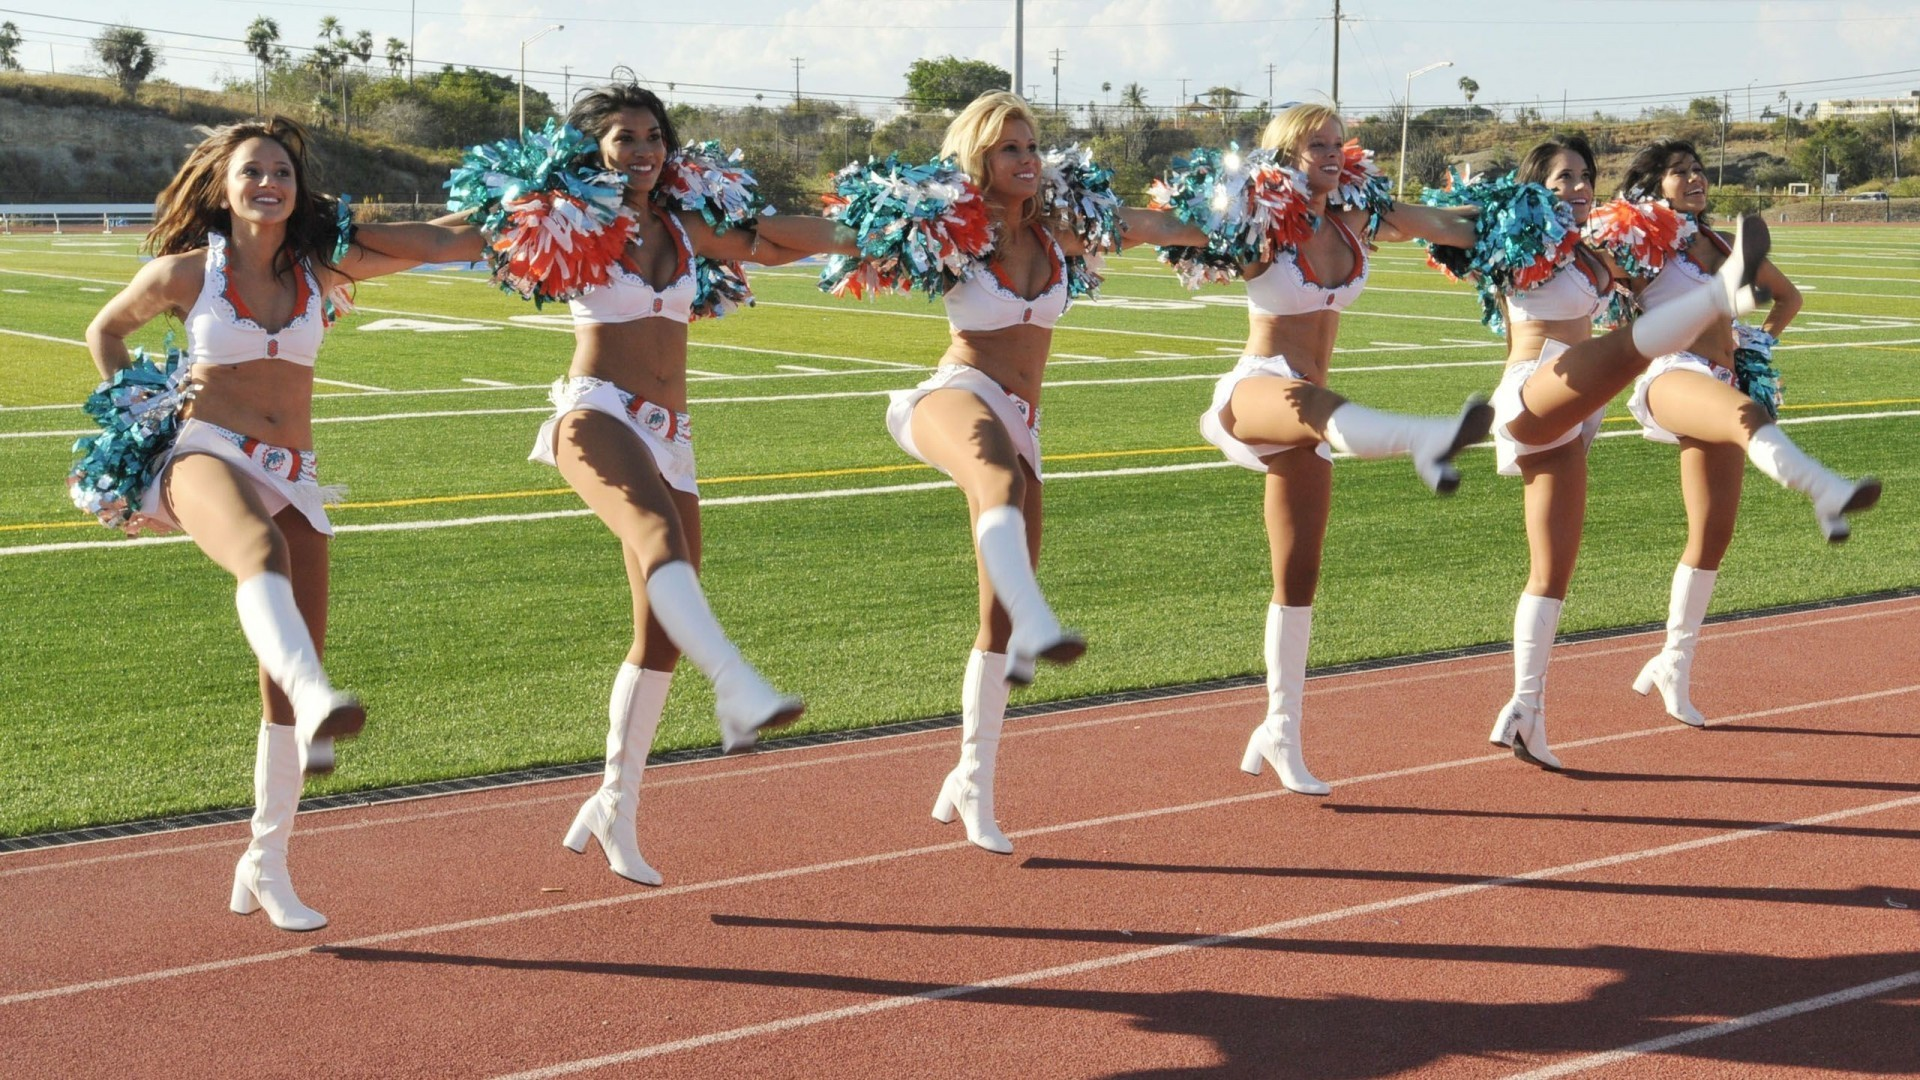 1920x1080 MIAMI DOLPHINS nfl football cheerleader g wallpaper |  | 154792 |  WallpaperUP